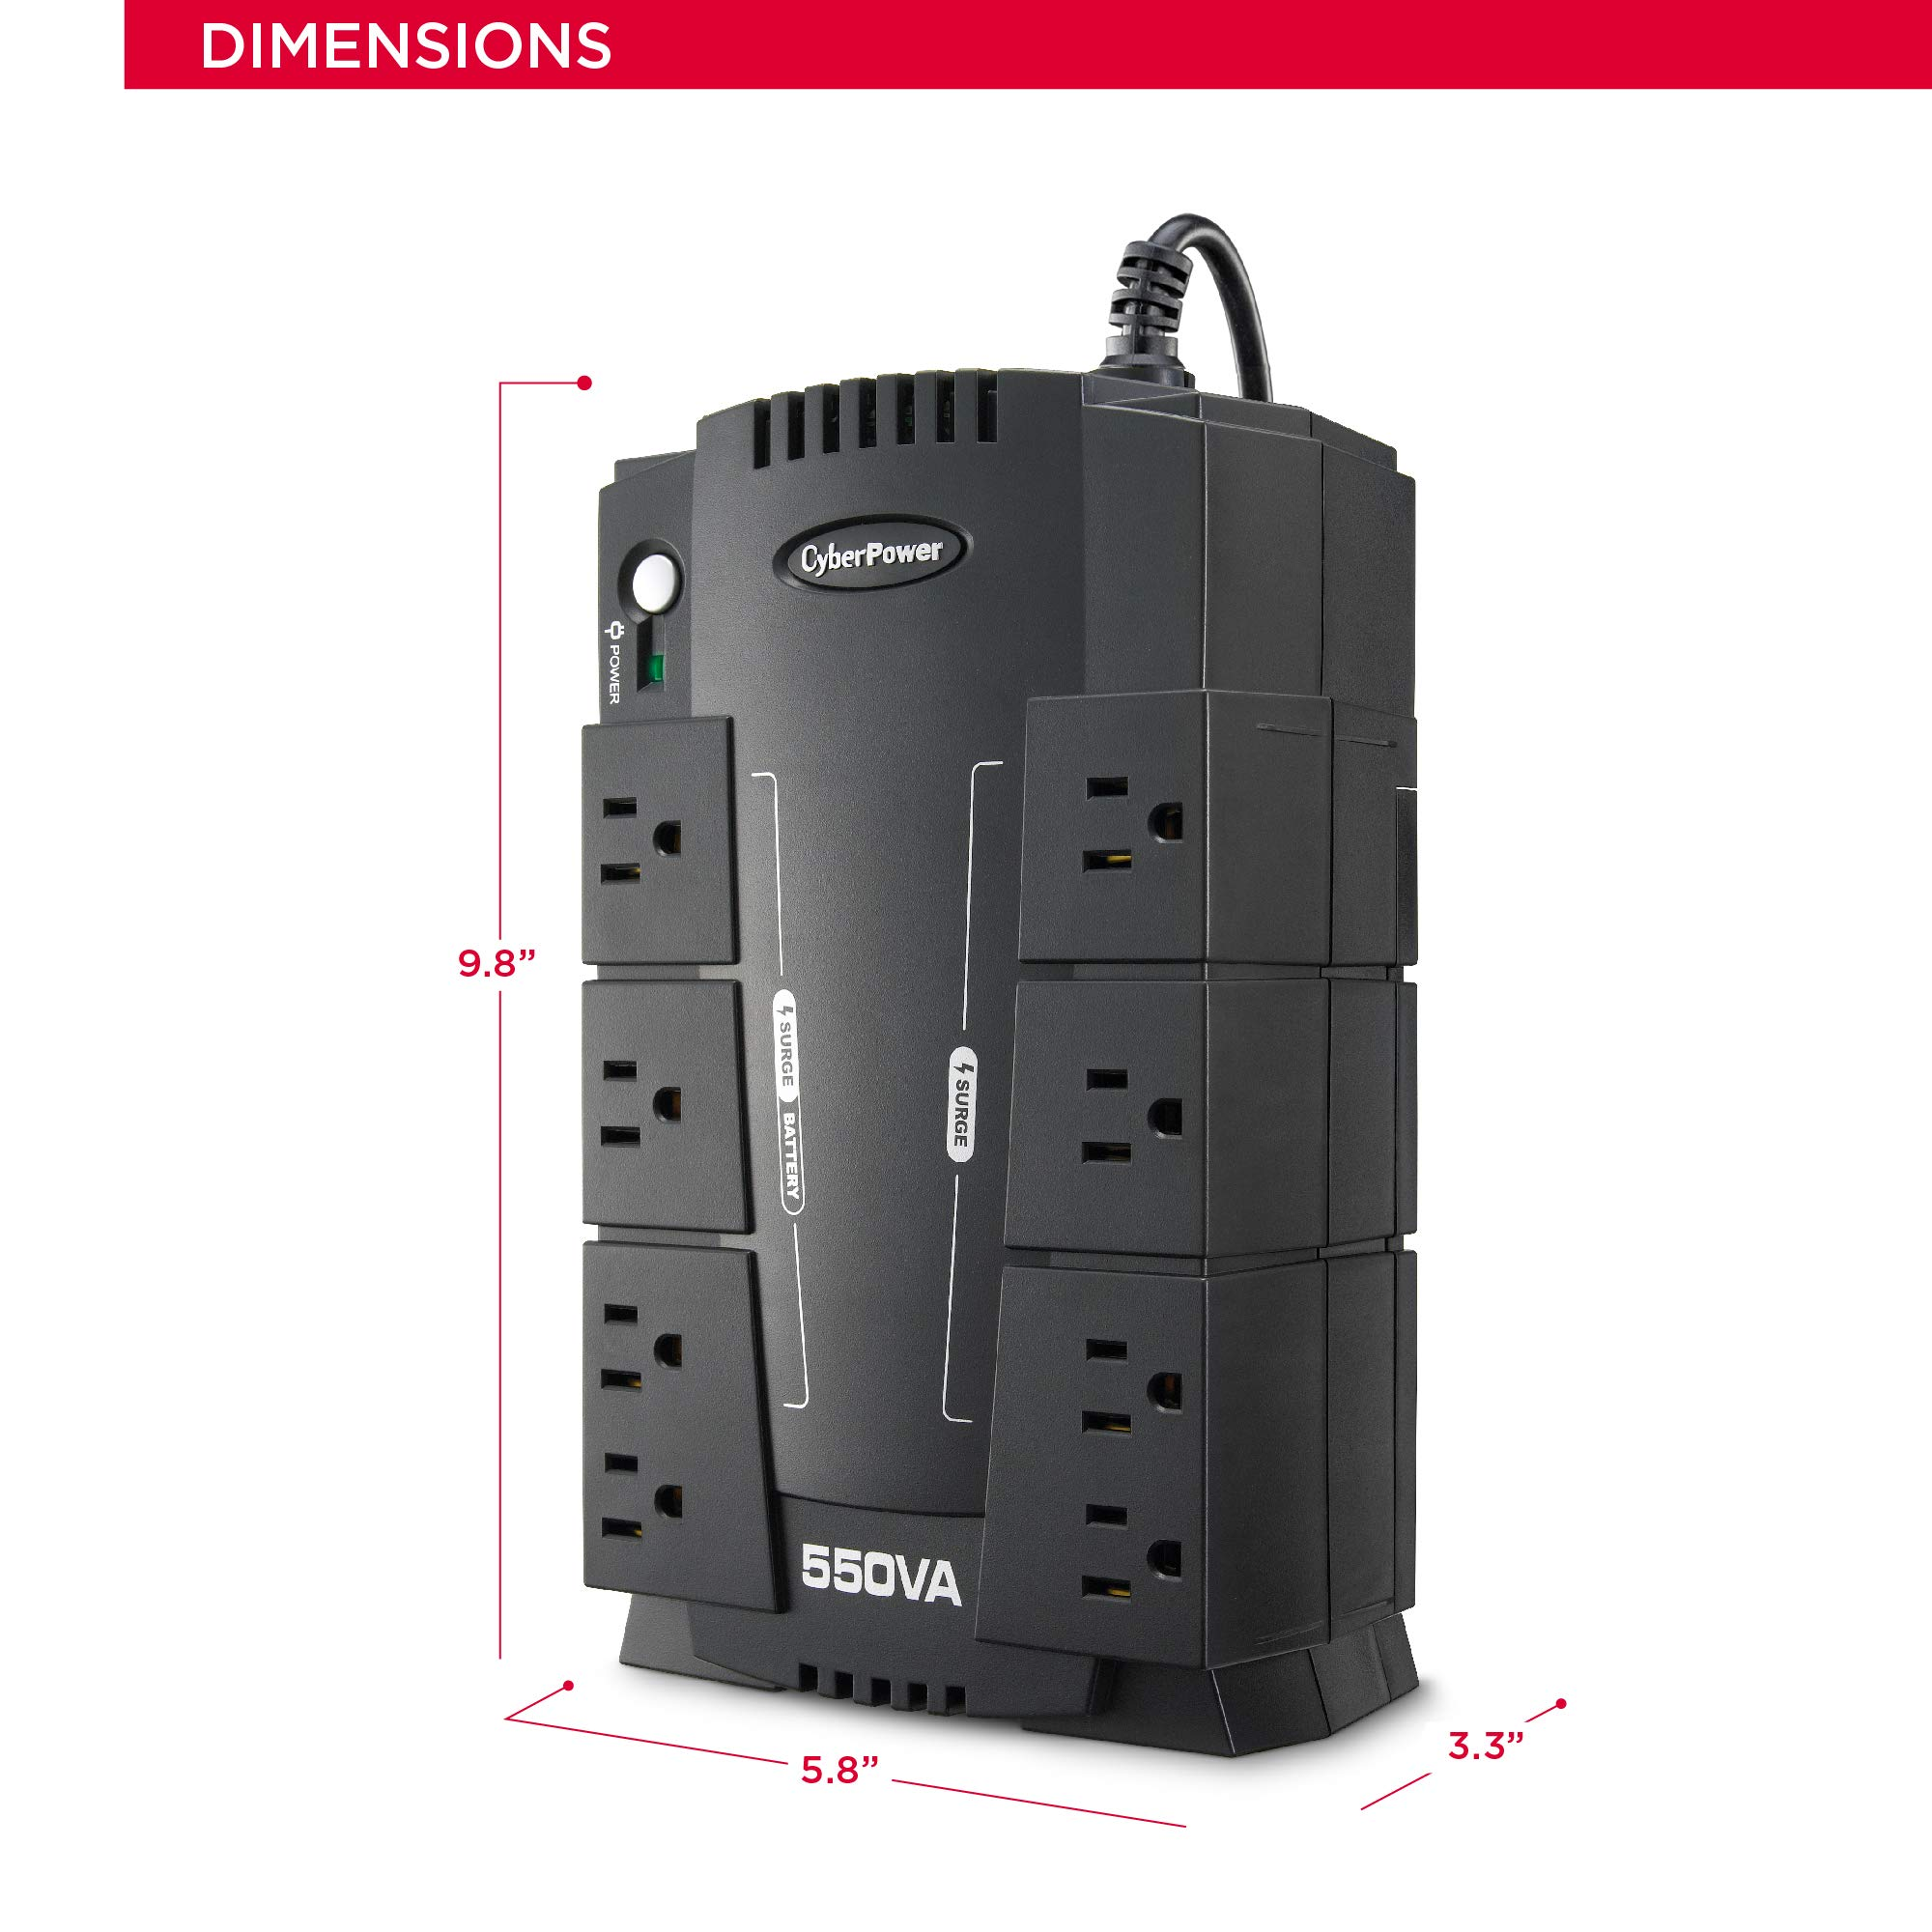 CyberPower CP550SLG Standby UPS System, 550VA/330W, 8 Outlets, Compact by CyberPower (Image #4)